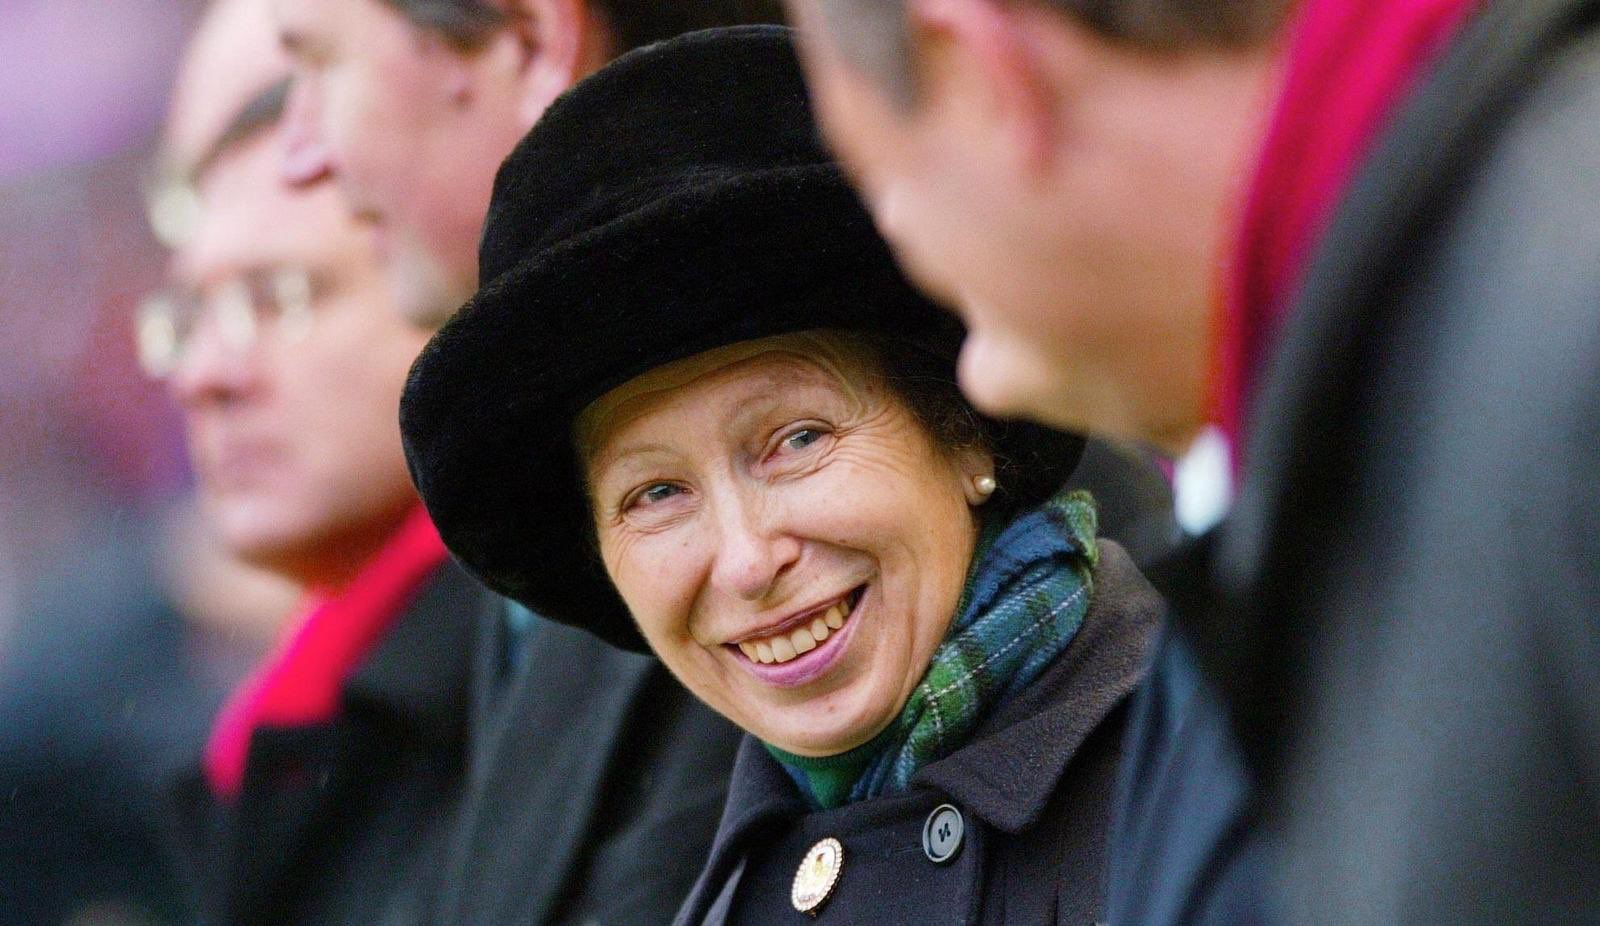 Tatlergram: Princess Anne Celebrates Her 70th Birthday